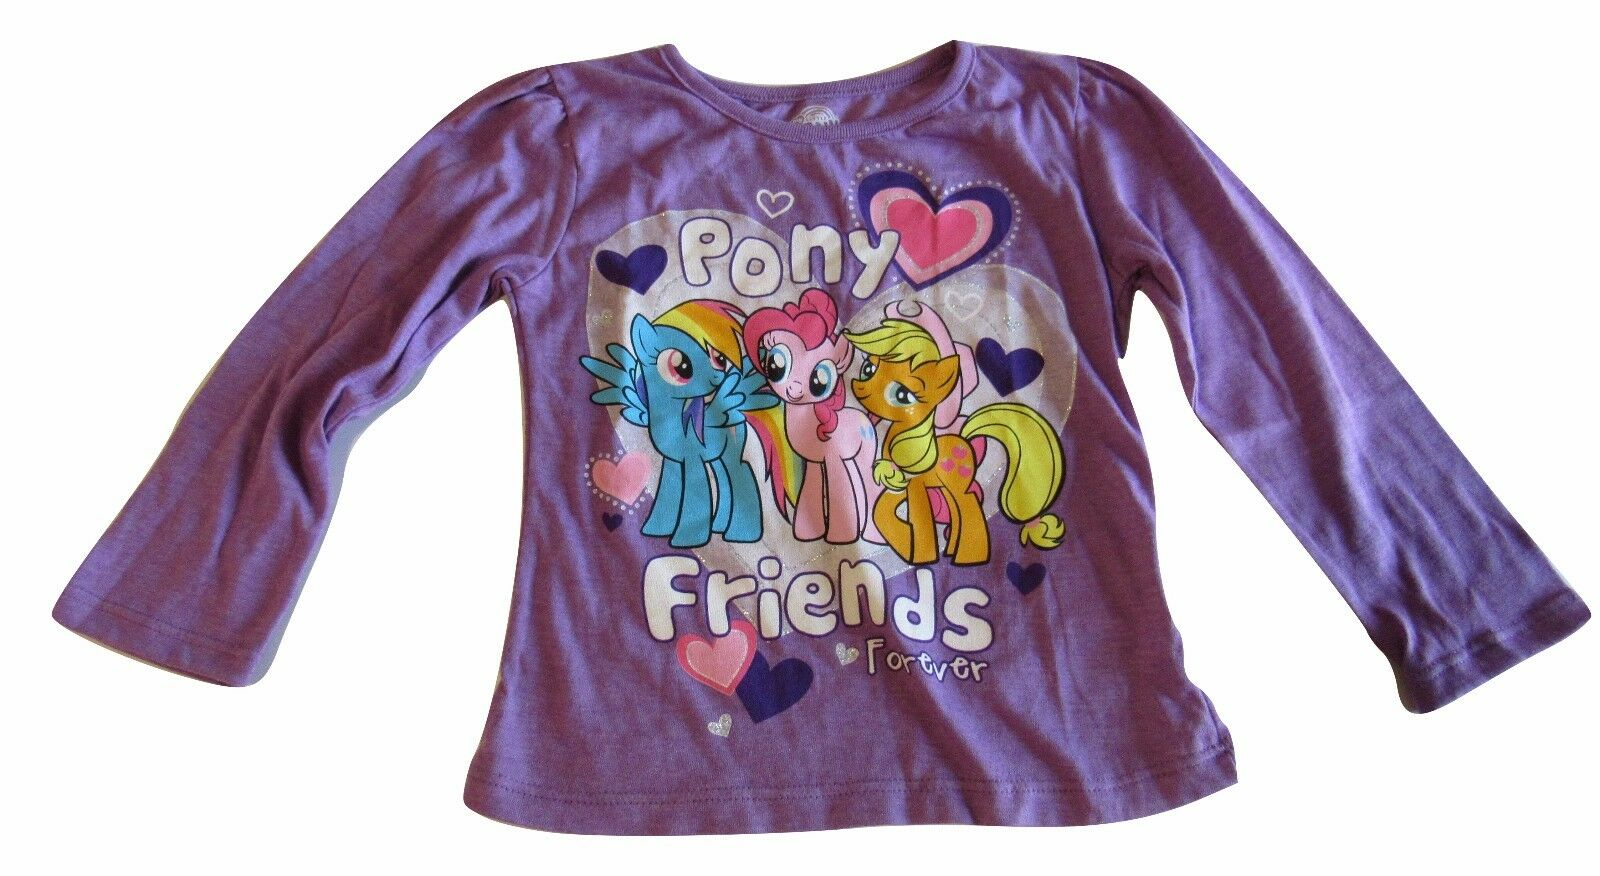 efd83a52f ... UPC 490311319319 product image for My Little Pony Top Shirt 12 Months  Purple Pony Friends Forever